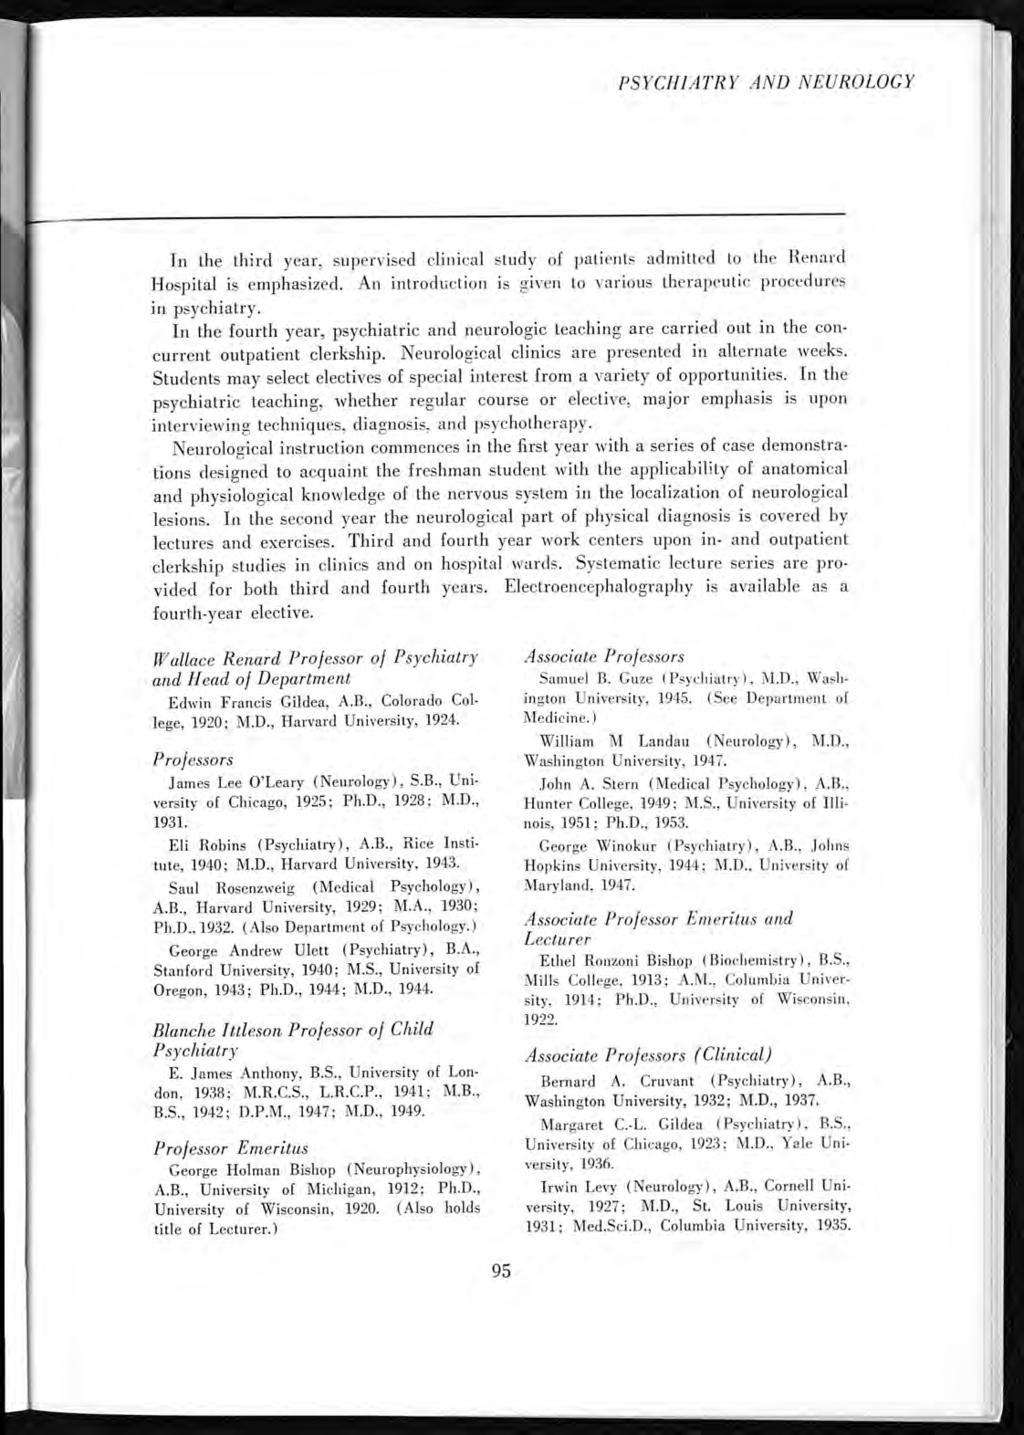 Washington University School Of Medicine Bulletin Pdf Coby Mat Mono Month Blanch New M Psychiatry And Neurology In The Third Year Supervised Clinical Study Patients Admitted To